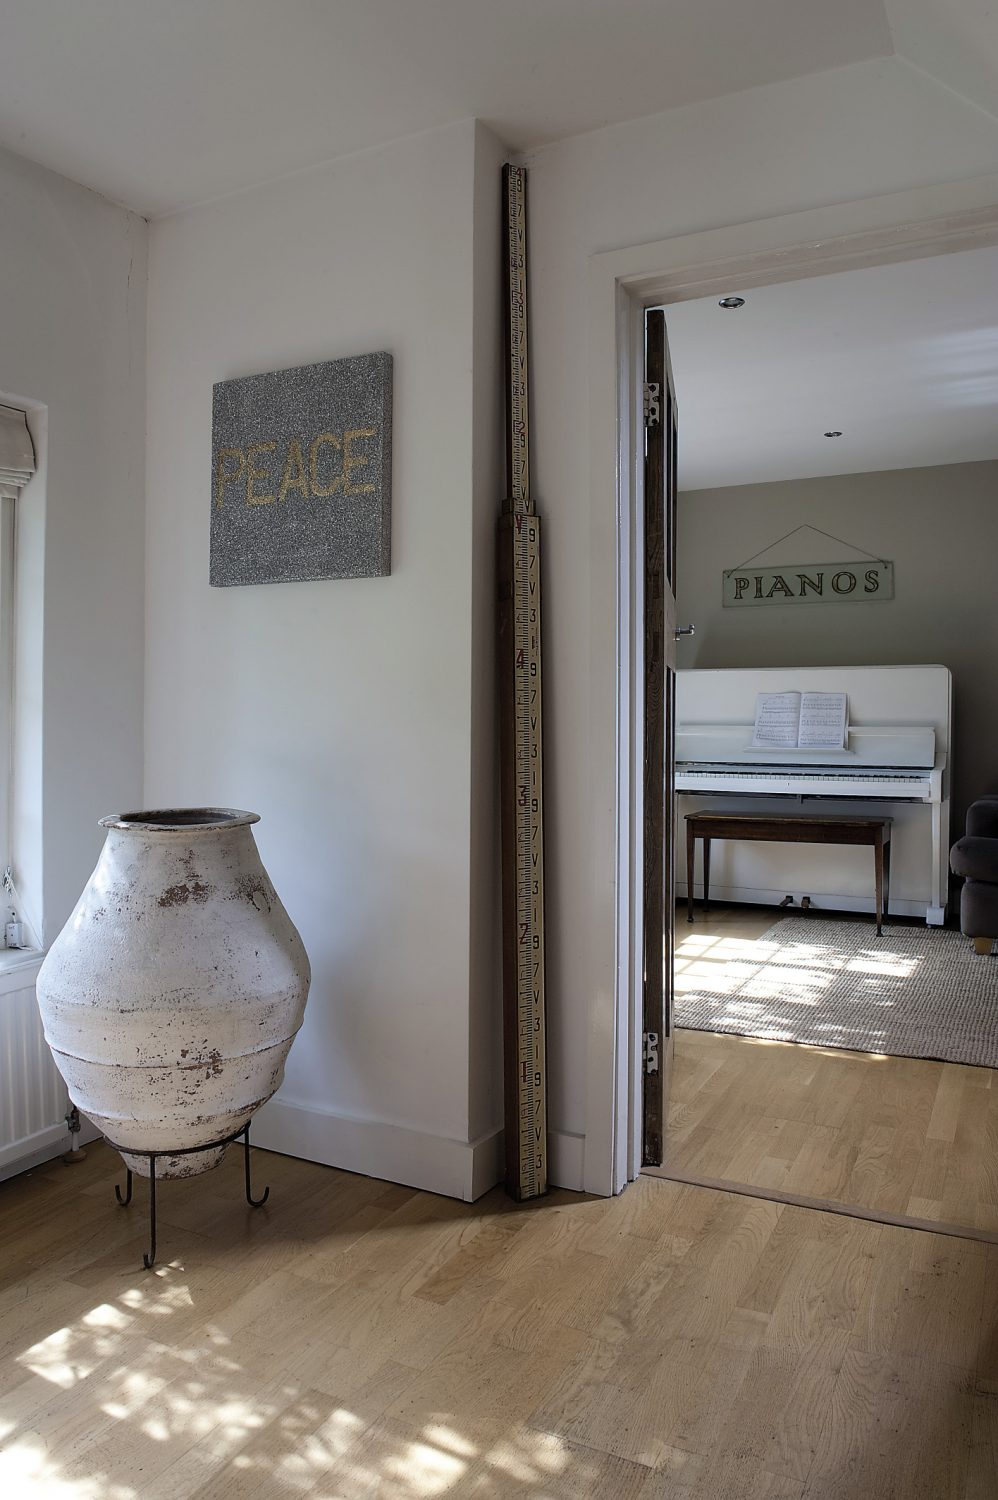 Opposite the sitting room is the music room-cum-playroom where pride of place goes to an upright piano that Sara and Peter have painted white